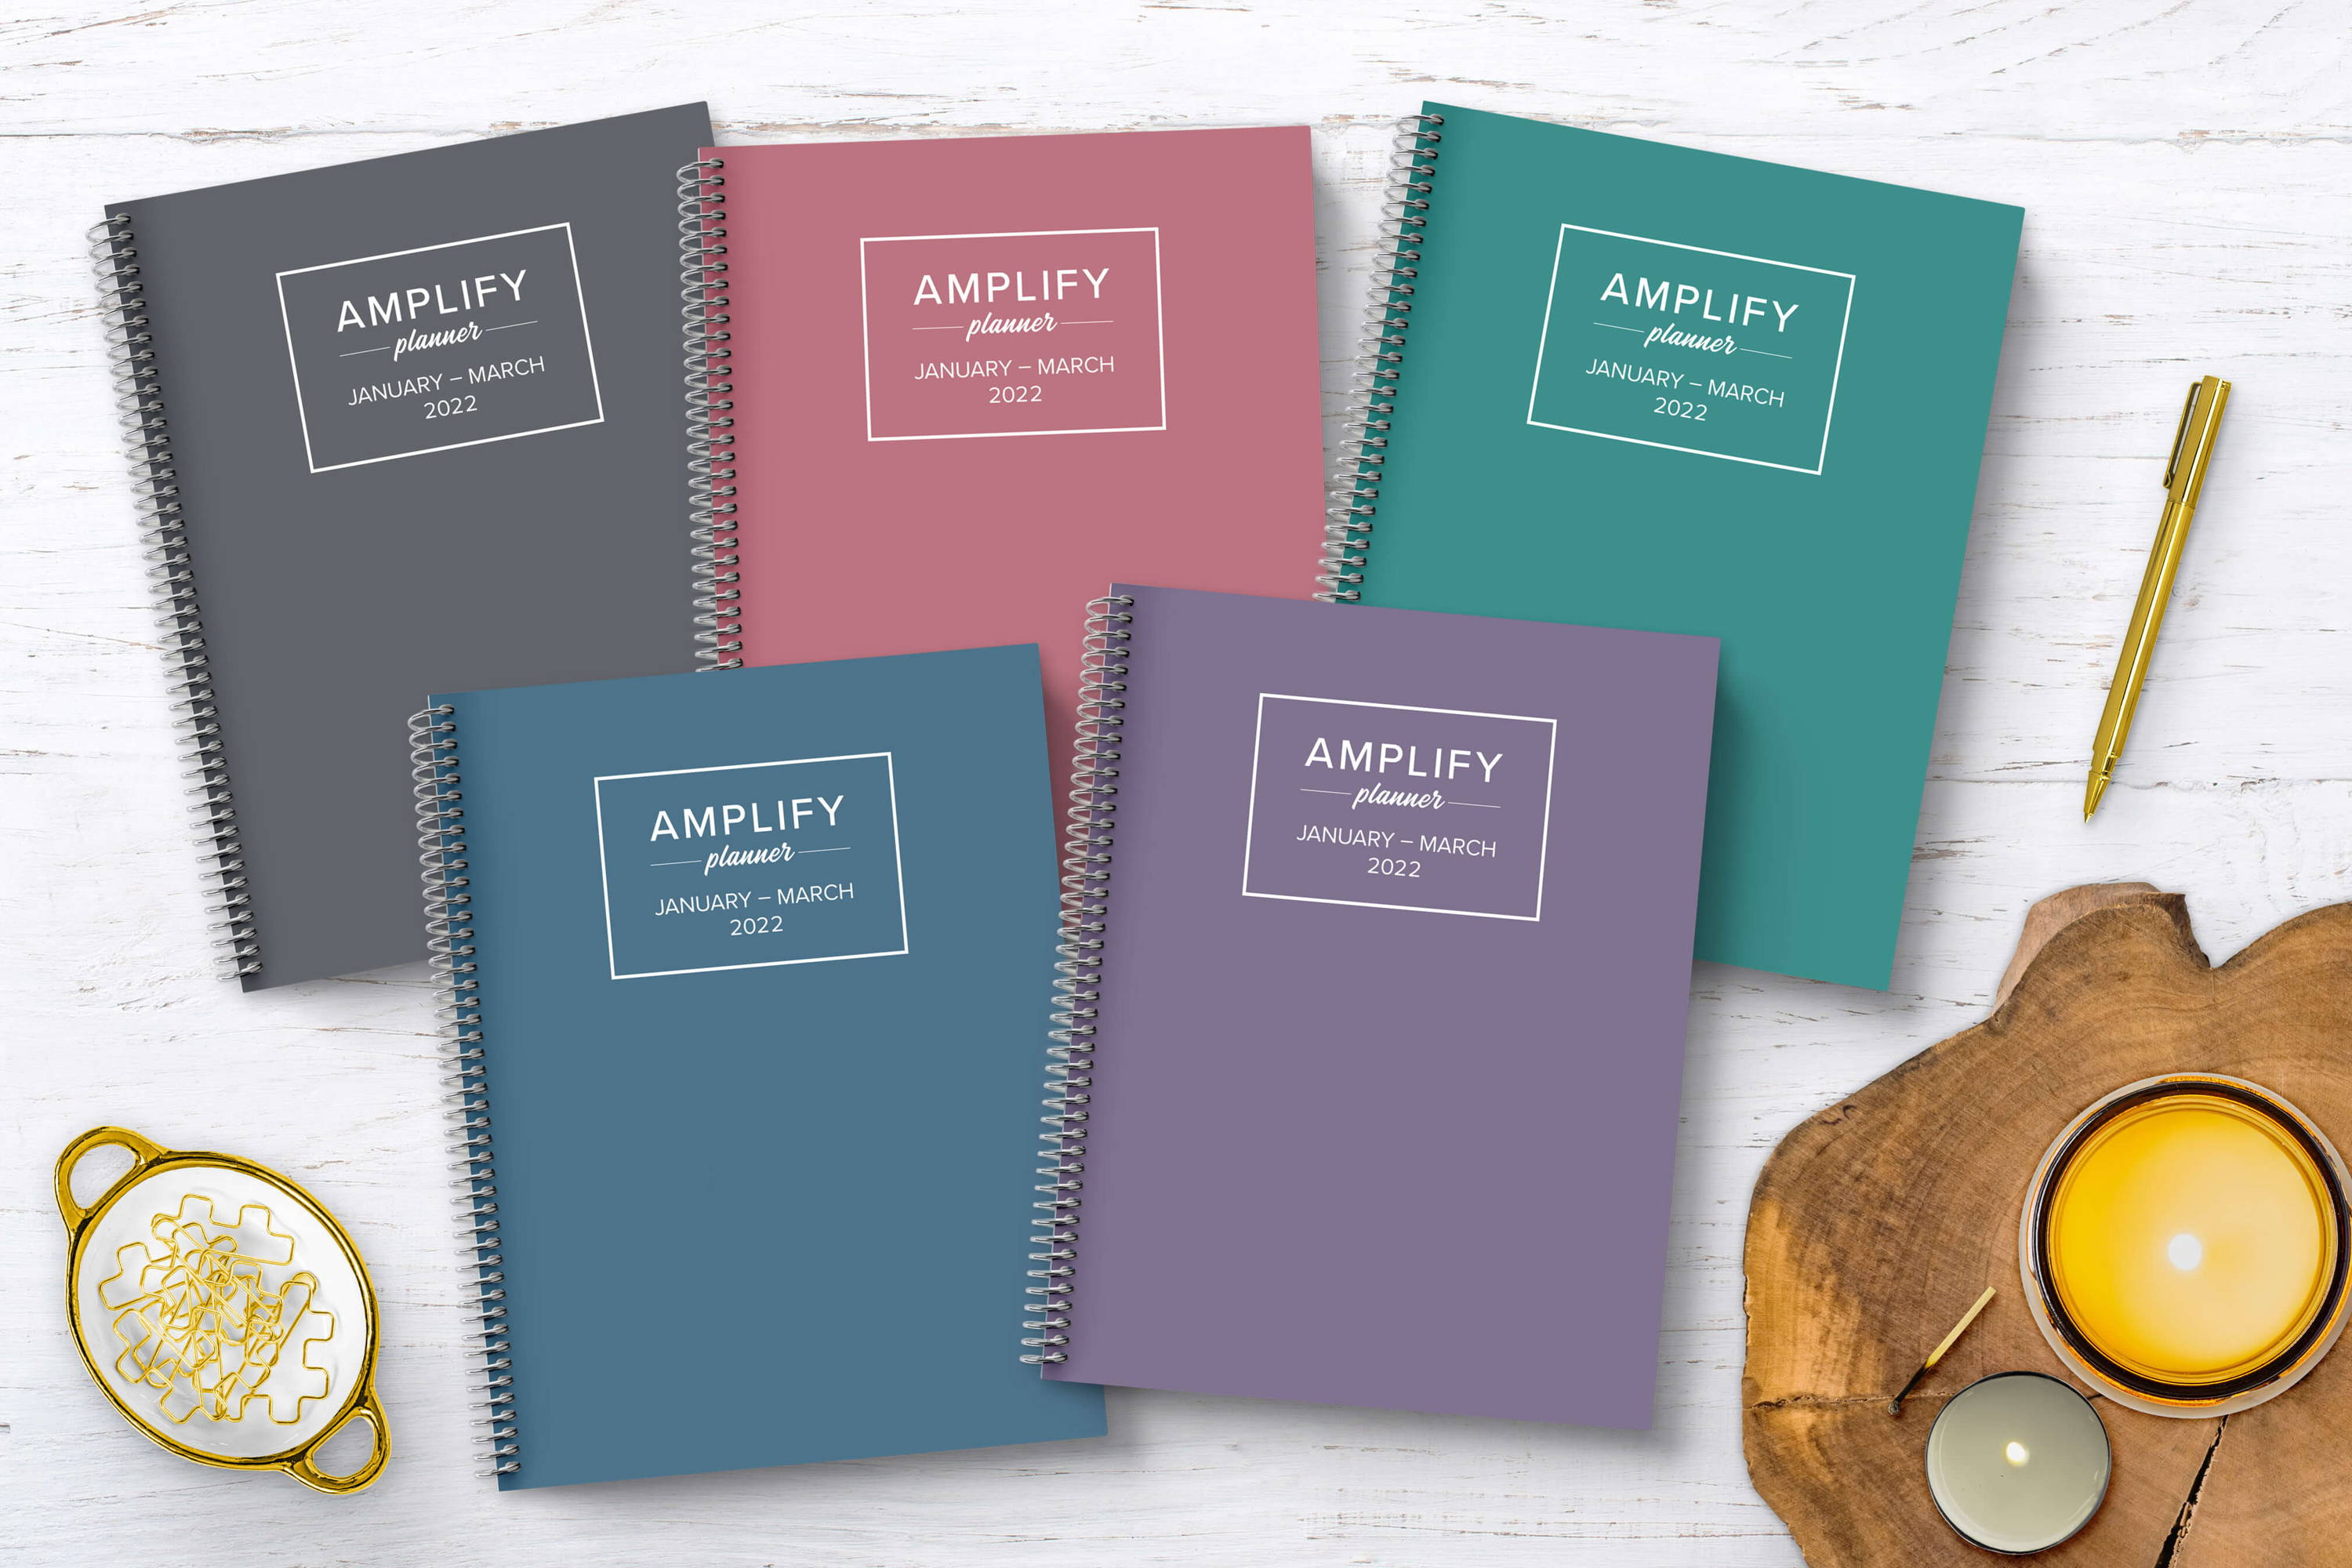 2022 amplify planners